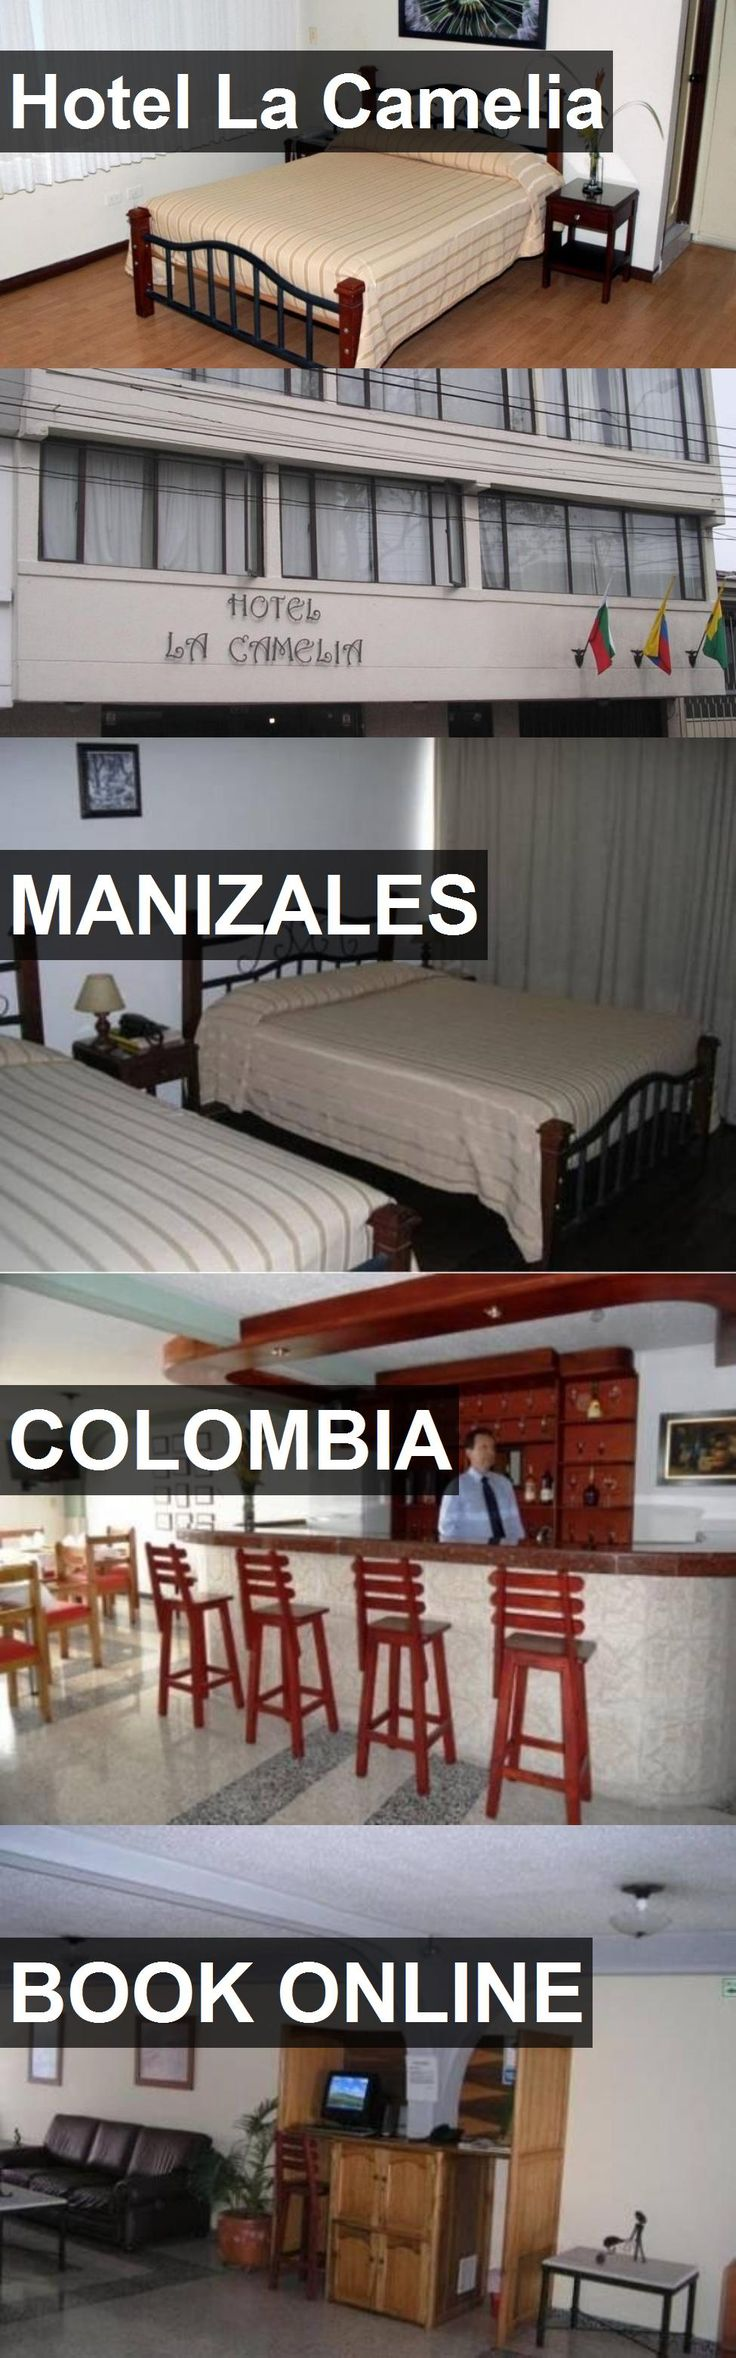 Hotel La Camelia in Manizales, Colombia. For more information, photos, reviews and best prices please follow the link. #Colombia #Manizales #travel #vacation #hotel